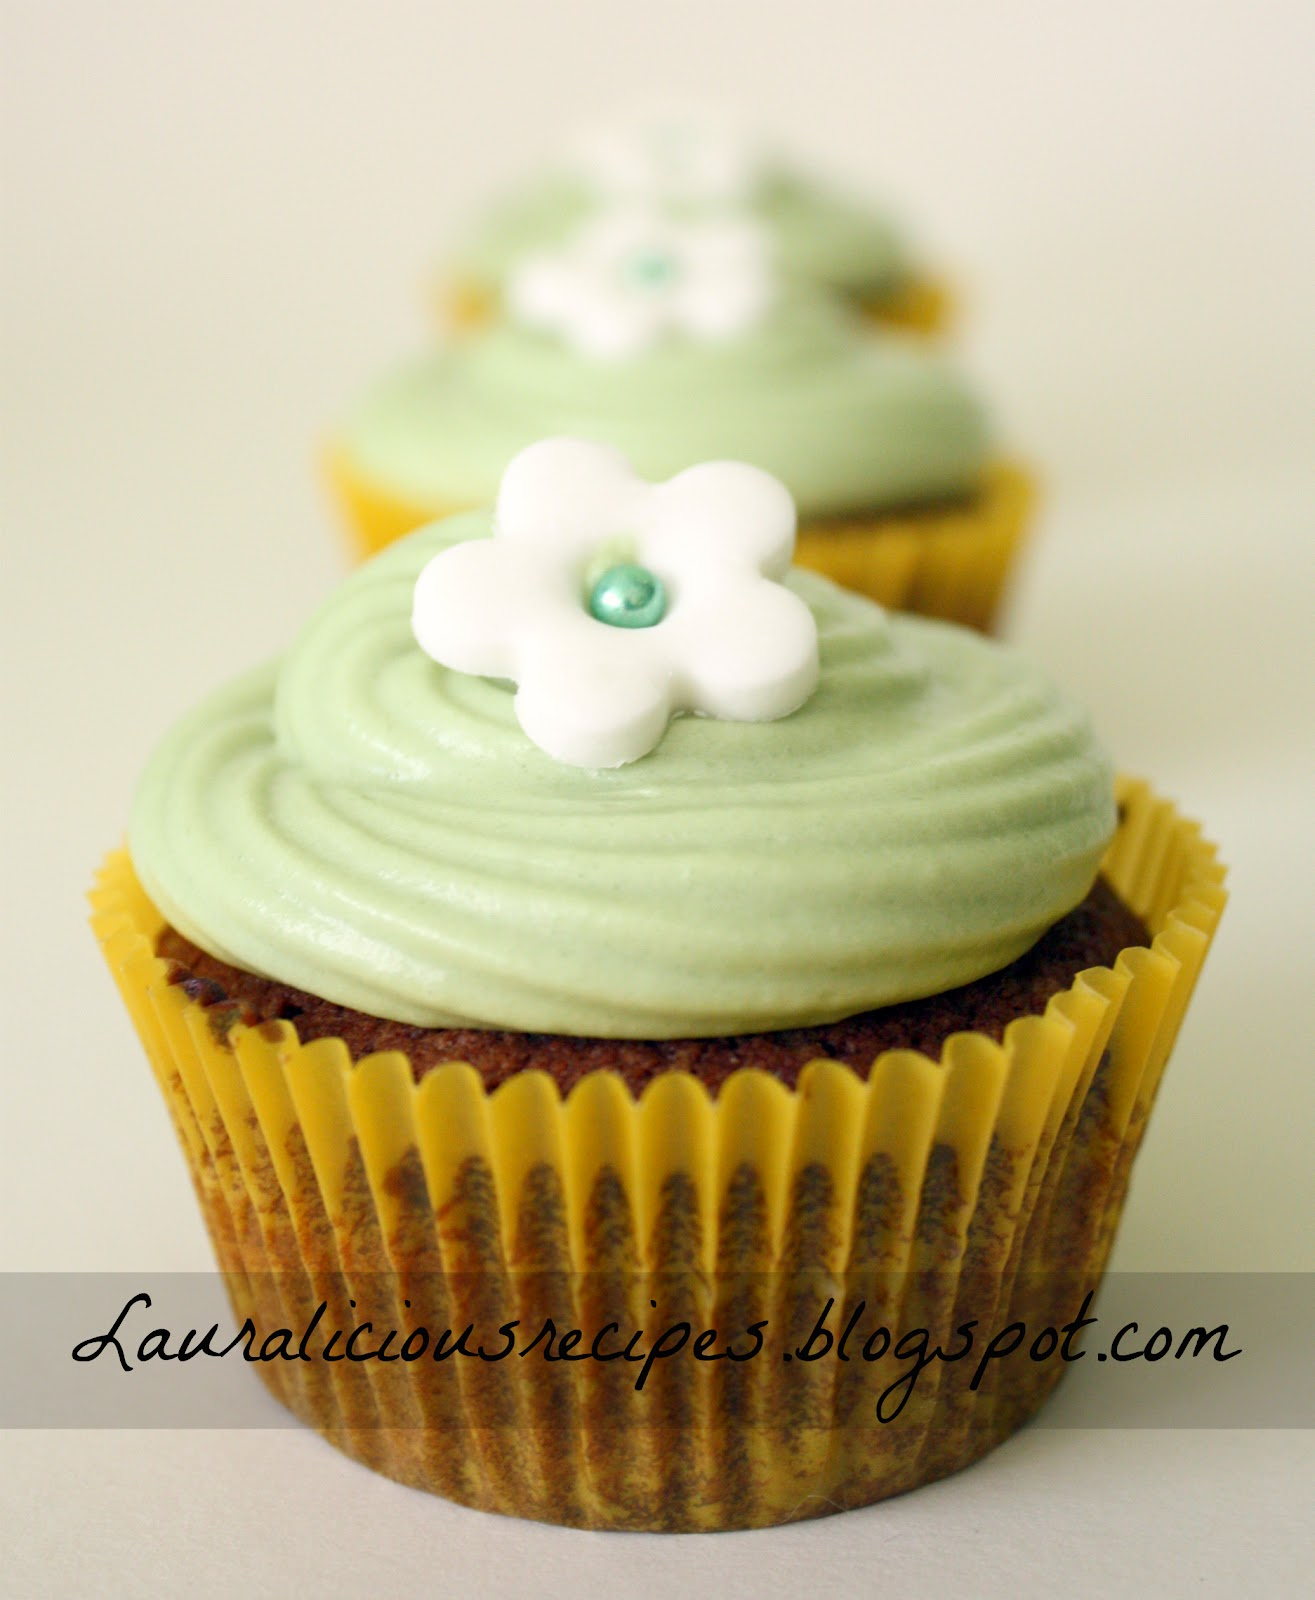 Lauralicious Recipes: Chocolate cupcakes with cream cheese frosting